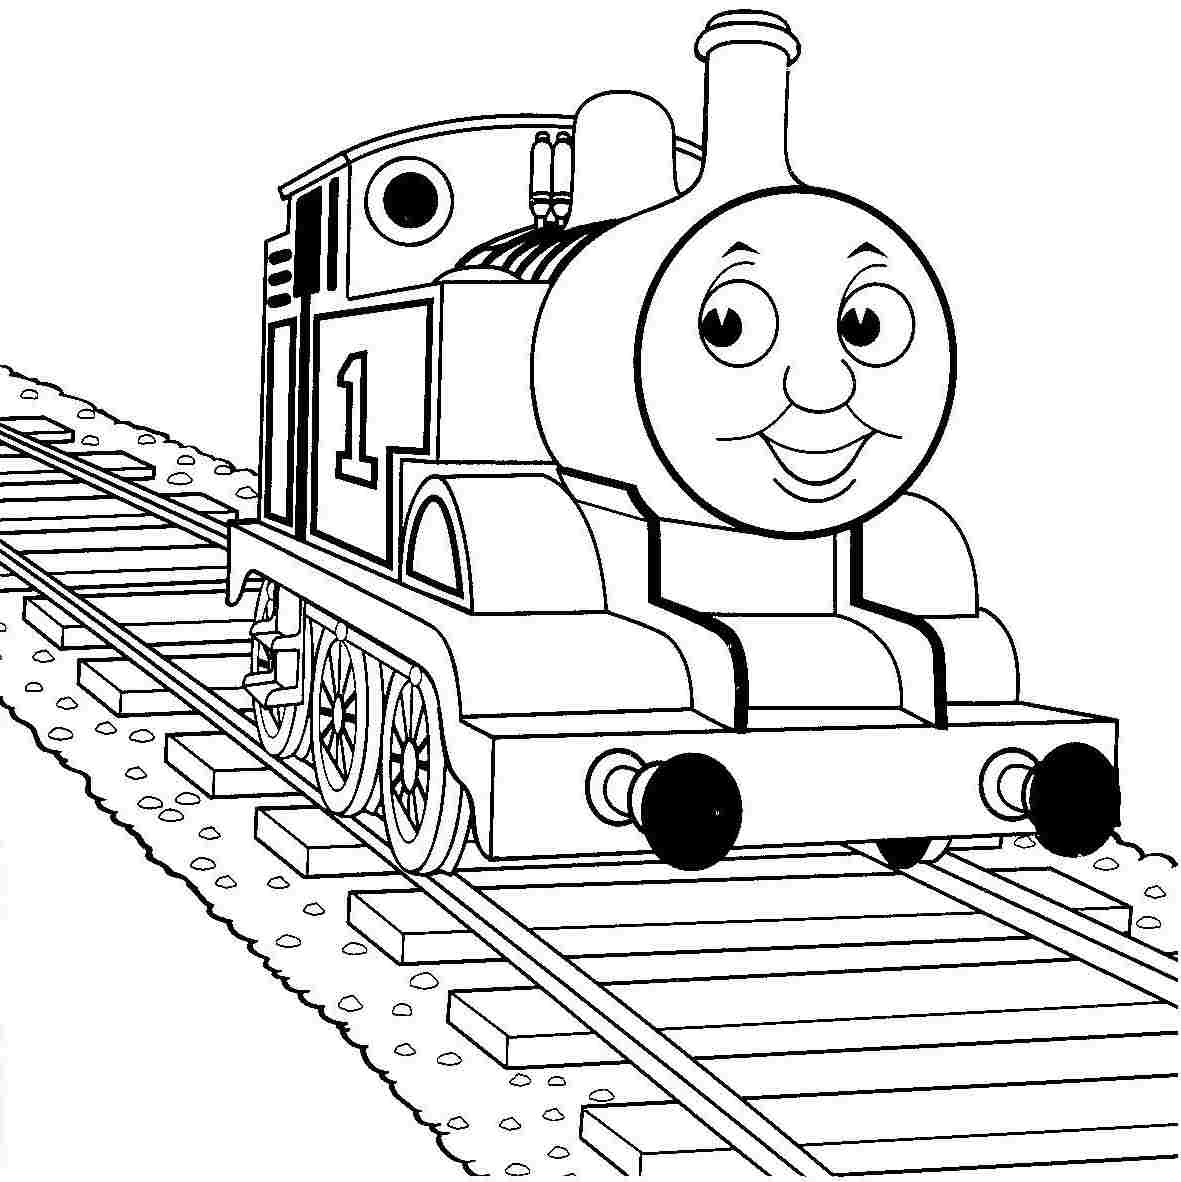 Choo Choo Train Drawing at GetDrawings | Free download